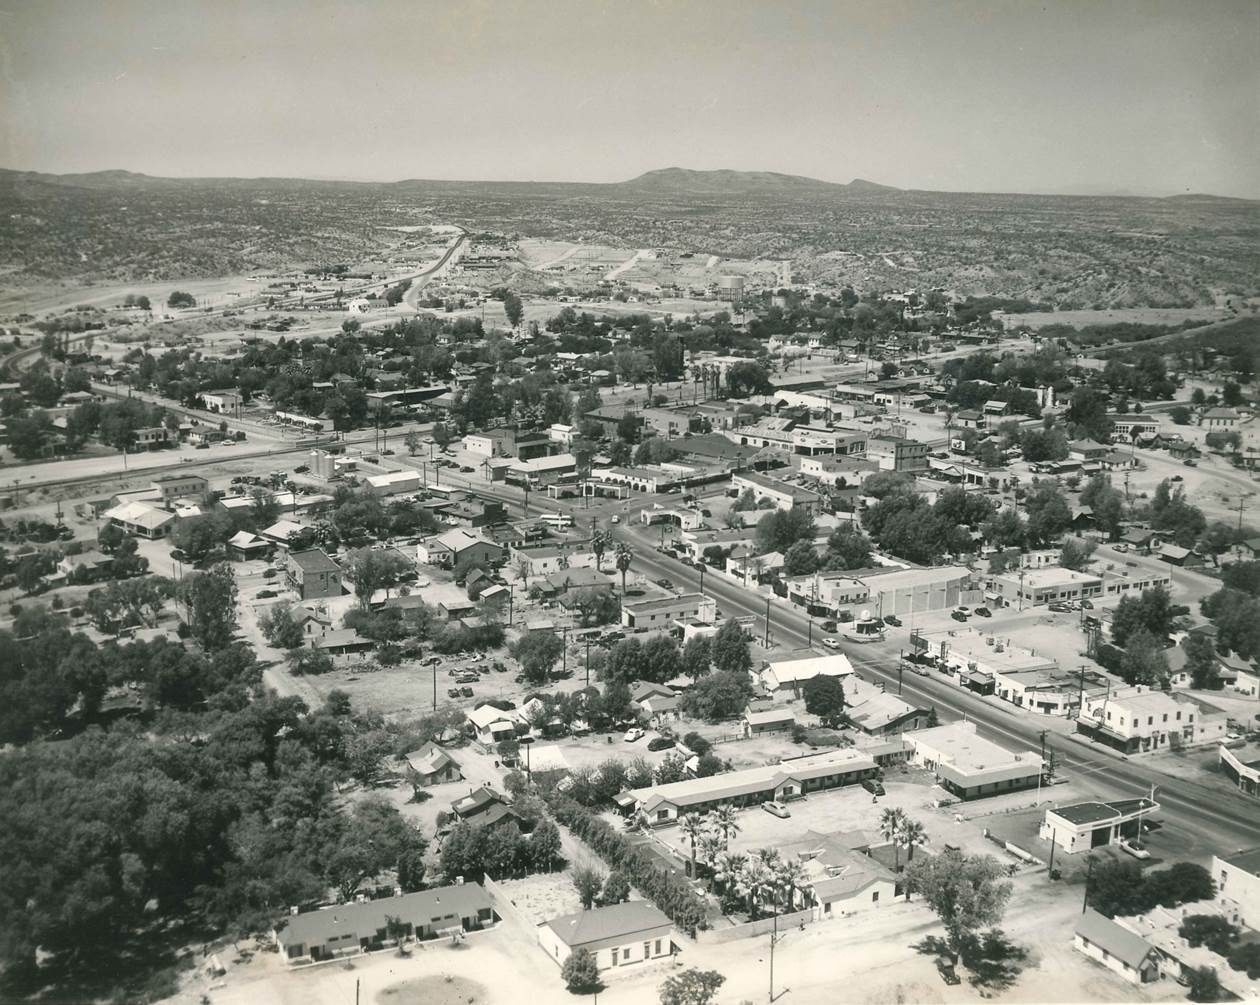 Wickenburg 1950